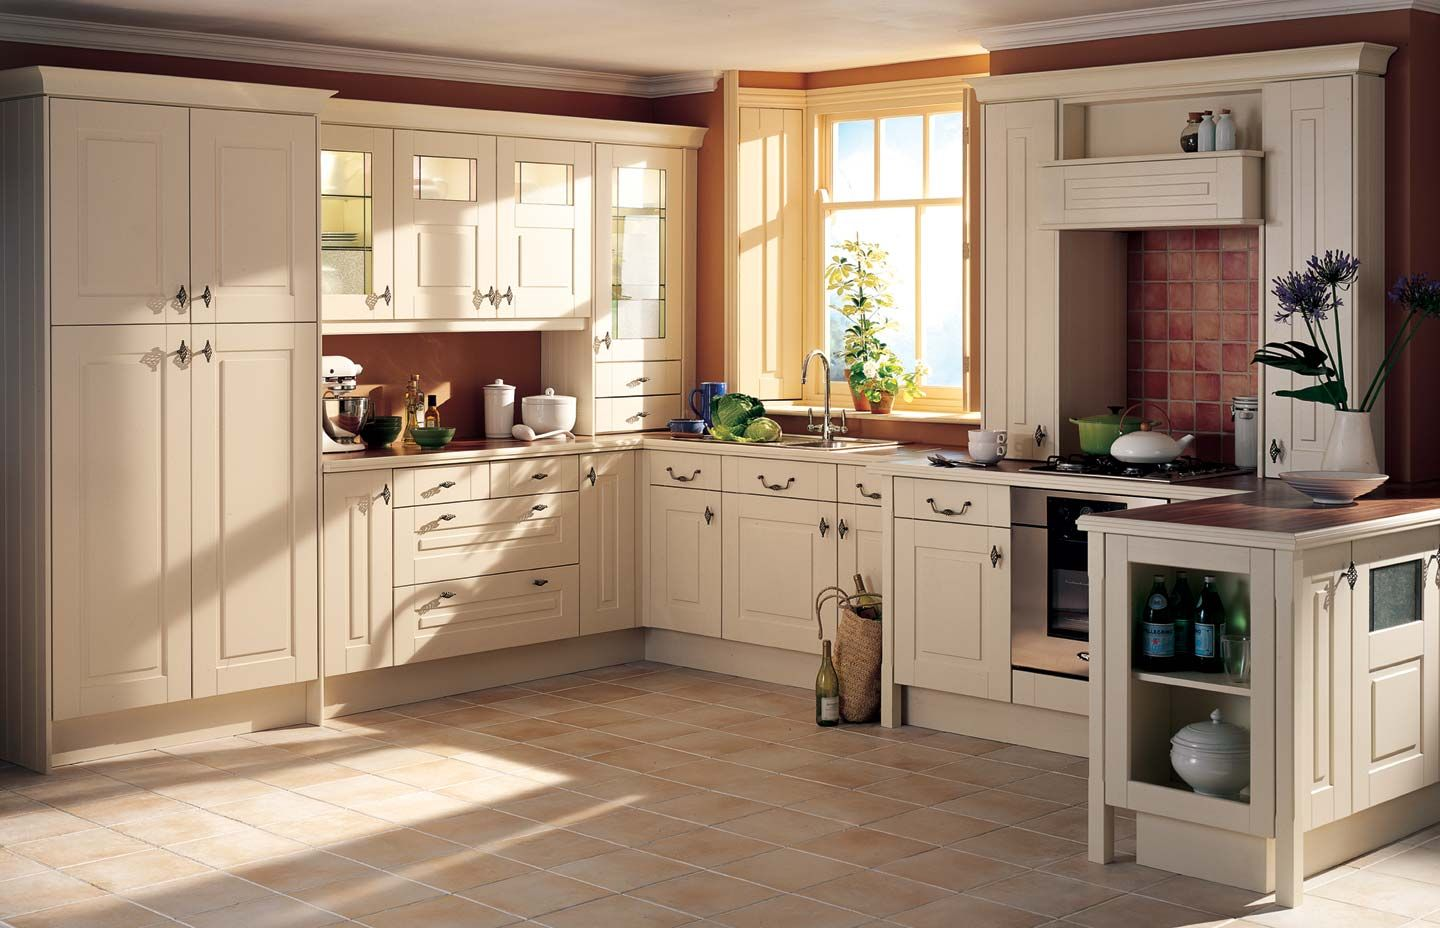 Country Kitchen Designs With Islands  My Style  Pinterest Fair Kitchen Styles Designs Design Ideas